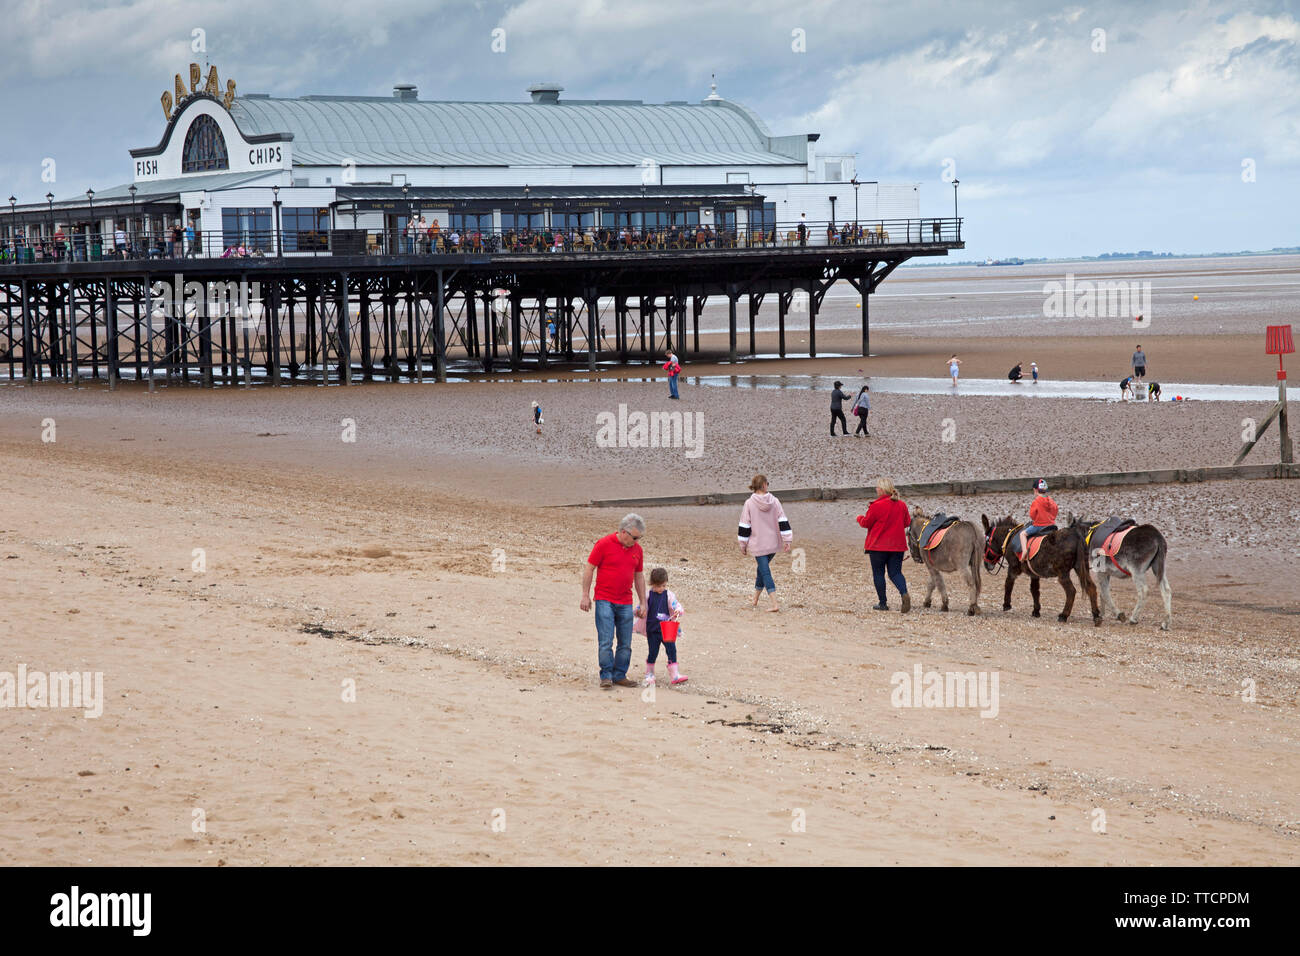 Cleethorpes, Lincolnshire, UK. 16th June 2019. UK weather. While northern parts of Lincolnshire suffer the remants of flooding, in Cleethorpes in north east Linconshire on Sunday afternoon families were enjoying the sun shine on Cleethorpes sandy beach with The Pier in the background, one little girl flying a kite with her family, others riding the donkeys and the next sheltering from a torrential downpour. Warm with 18 degrees. - Stock Image